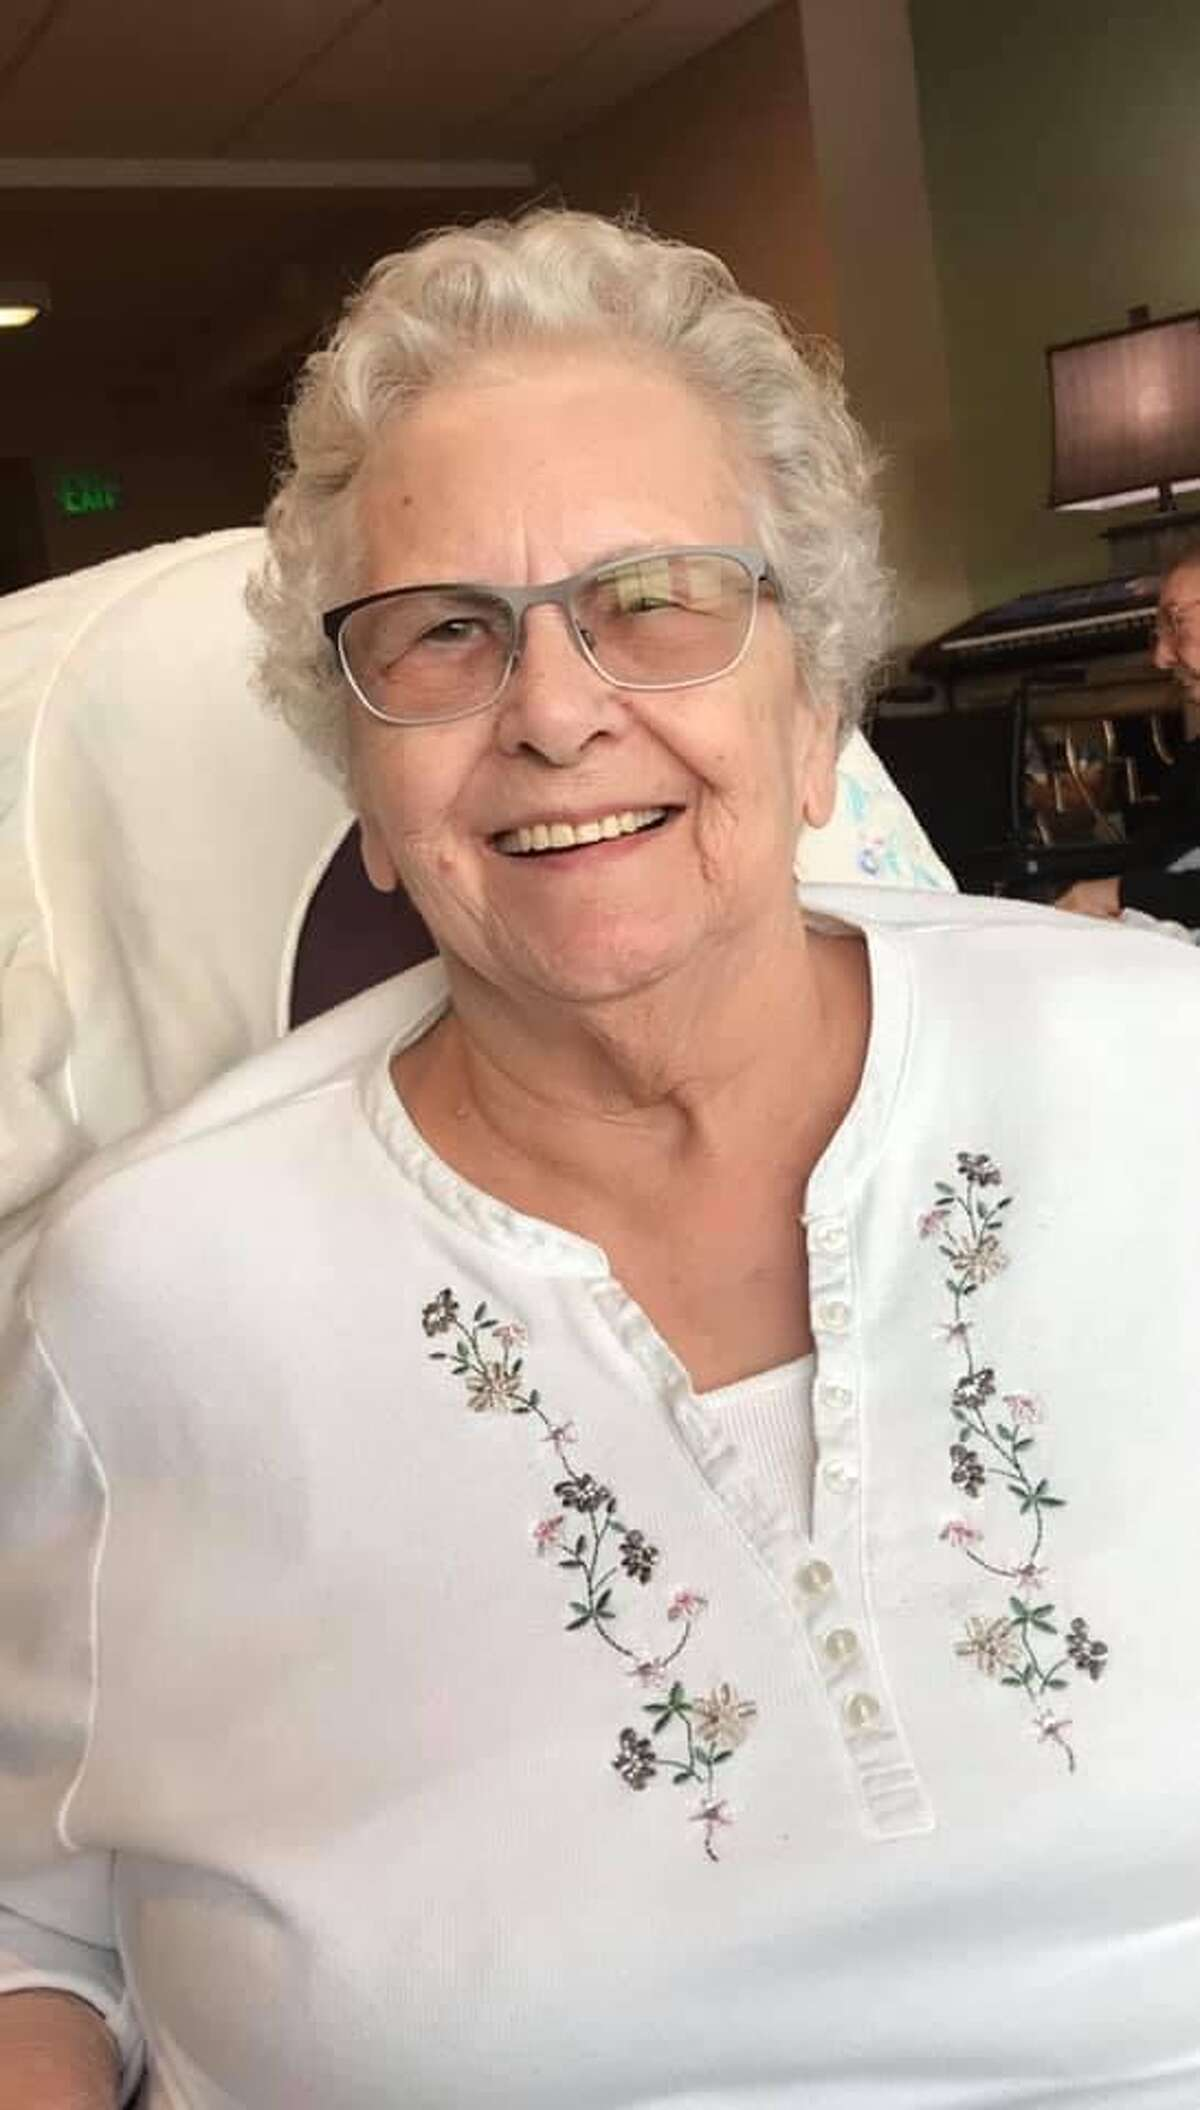 Frances Mealey died at Samaritan Hospital where she worked for 35 years. She was diagnosed on a Saturday and died the following Thursday, Thanksgiving Day.